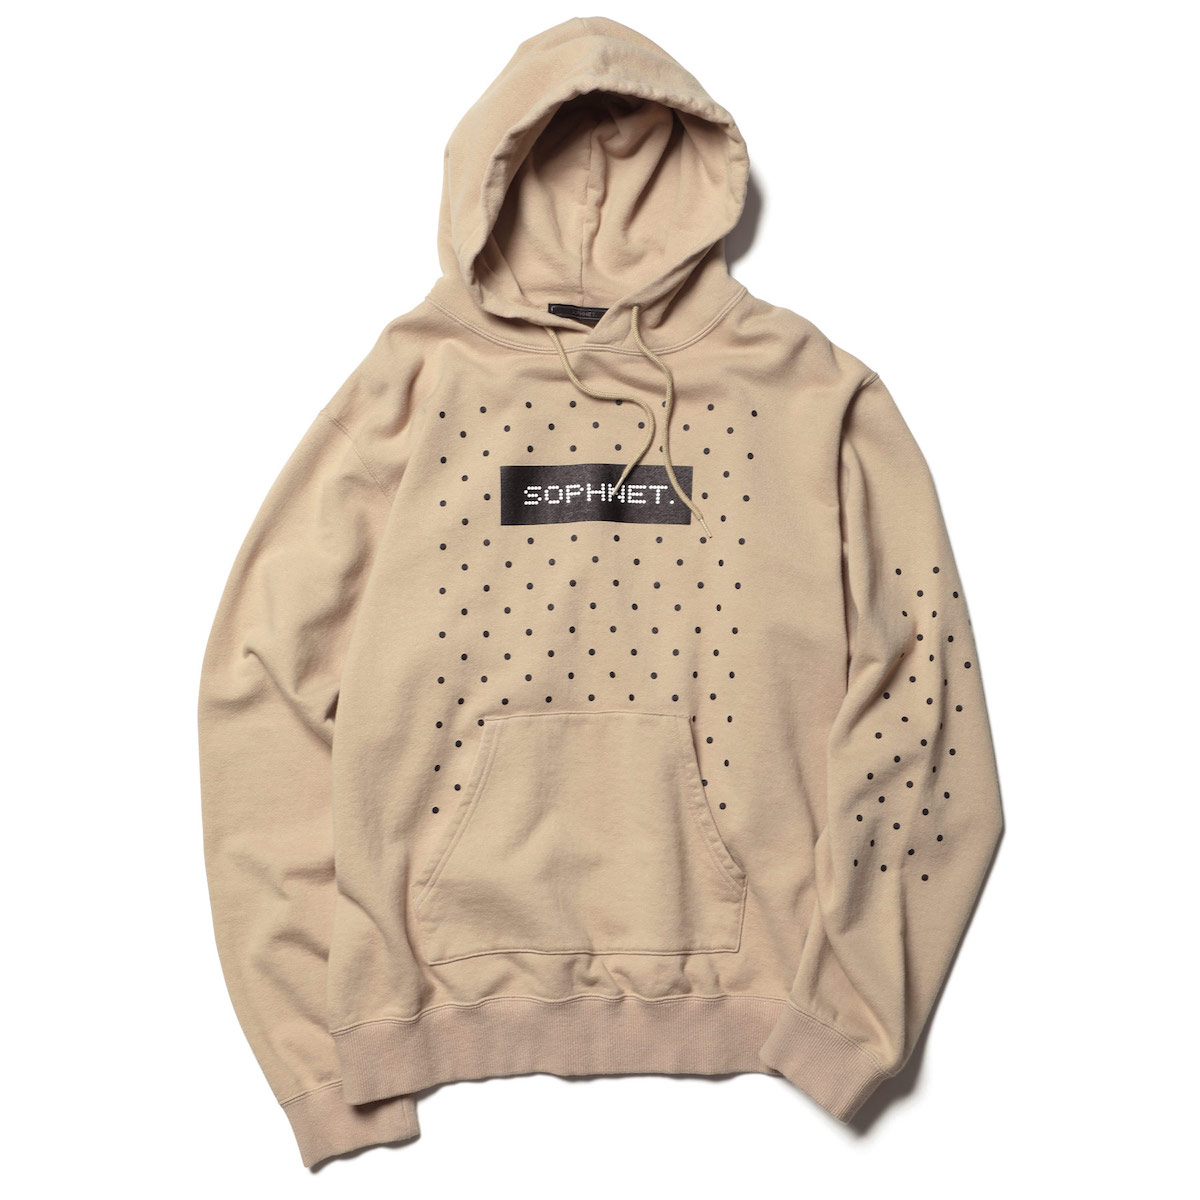 SOPHNET. / AUTHENTIC LOGO DOT HOODIE -Beige